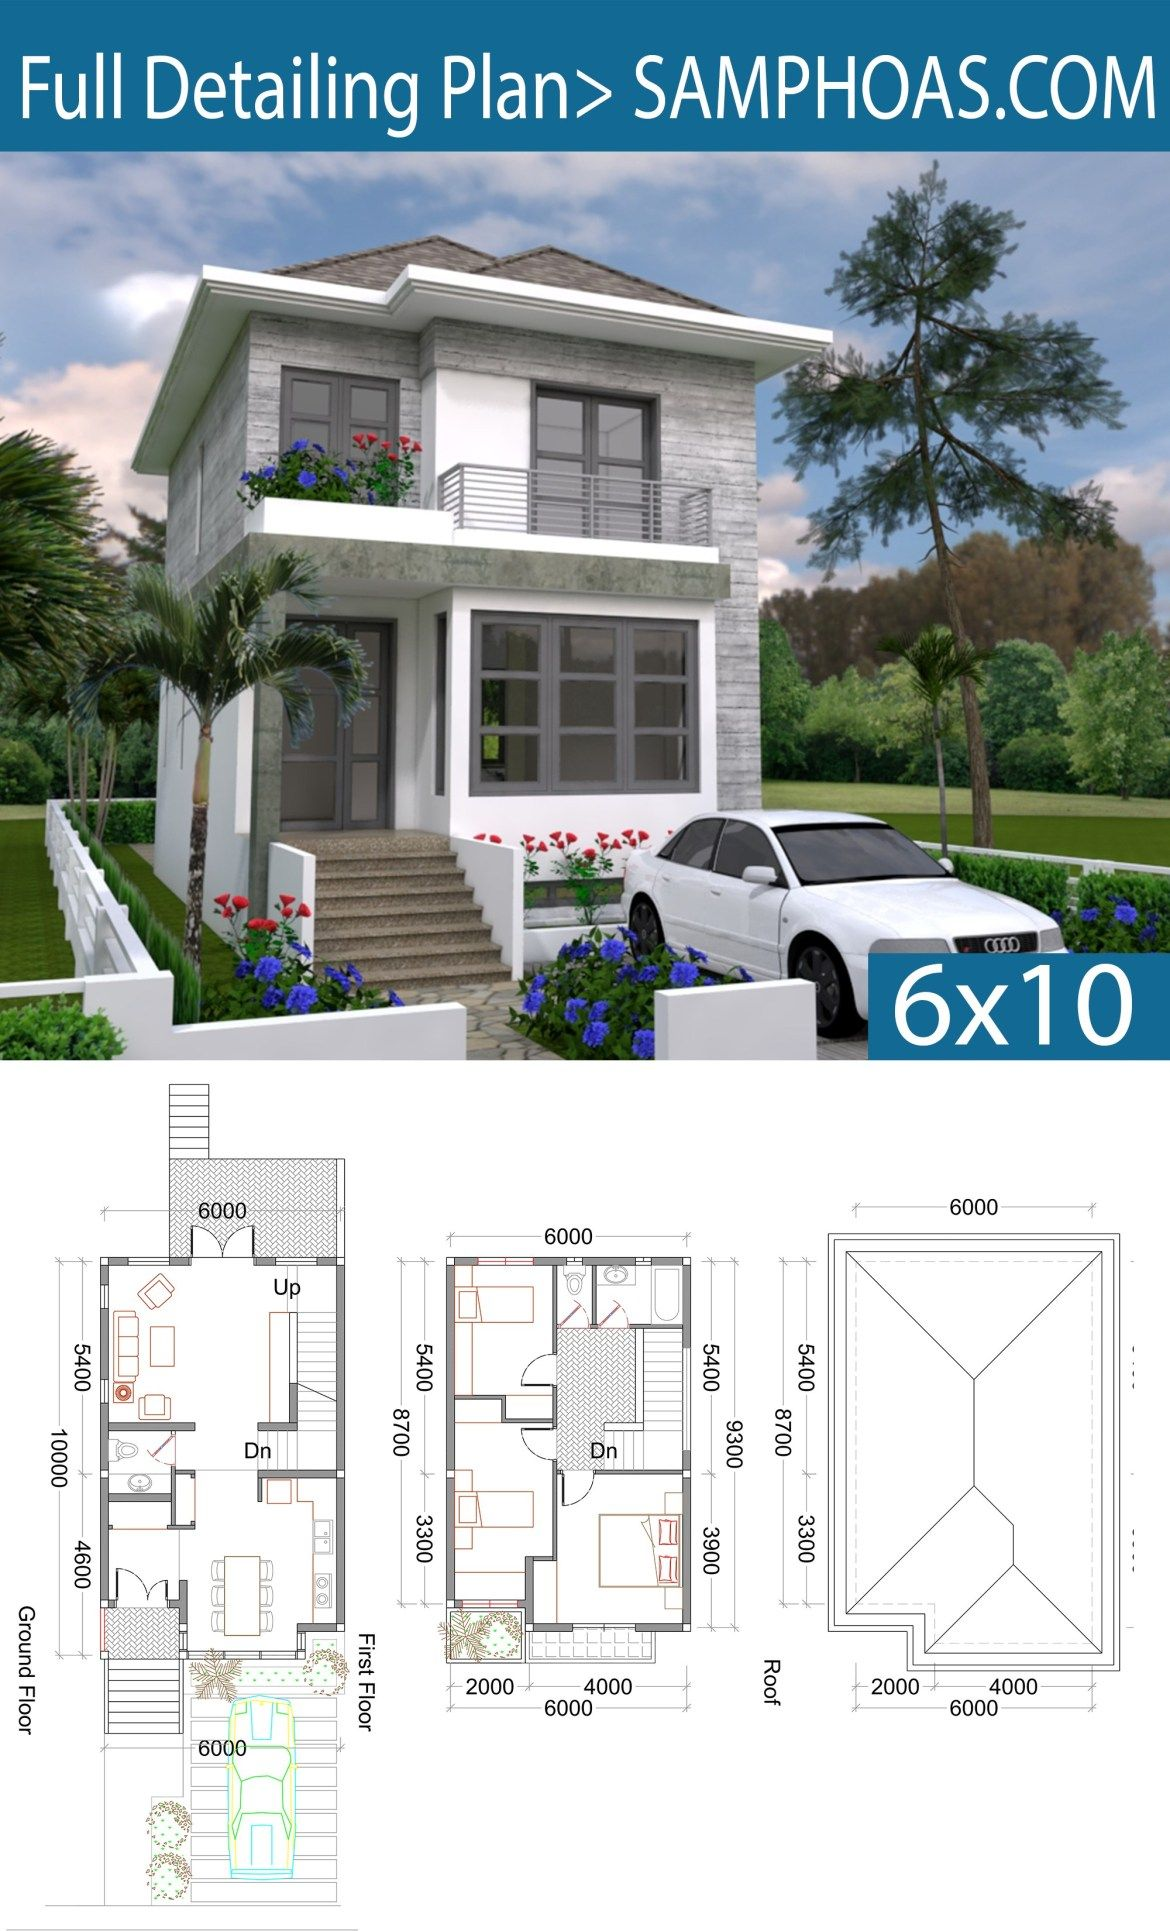 3 Bedrooms Small Home Design Plan 6x10m Samphoas Plansearch Small House Design Home Design Plan House Front Design